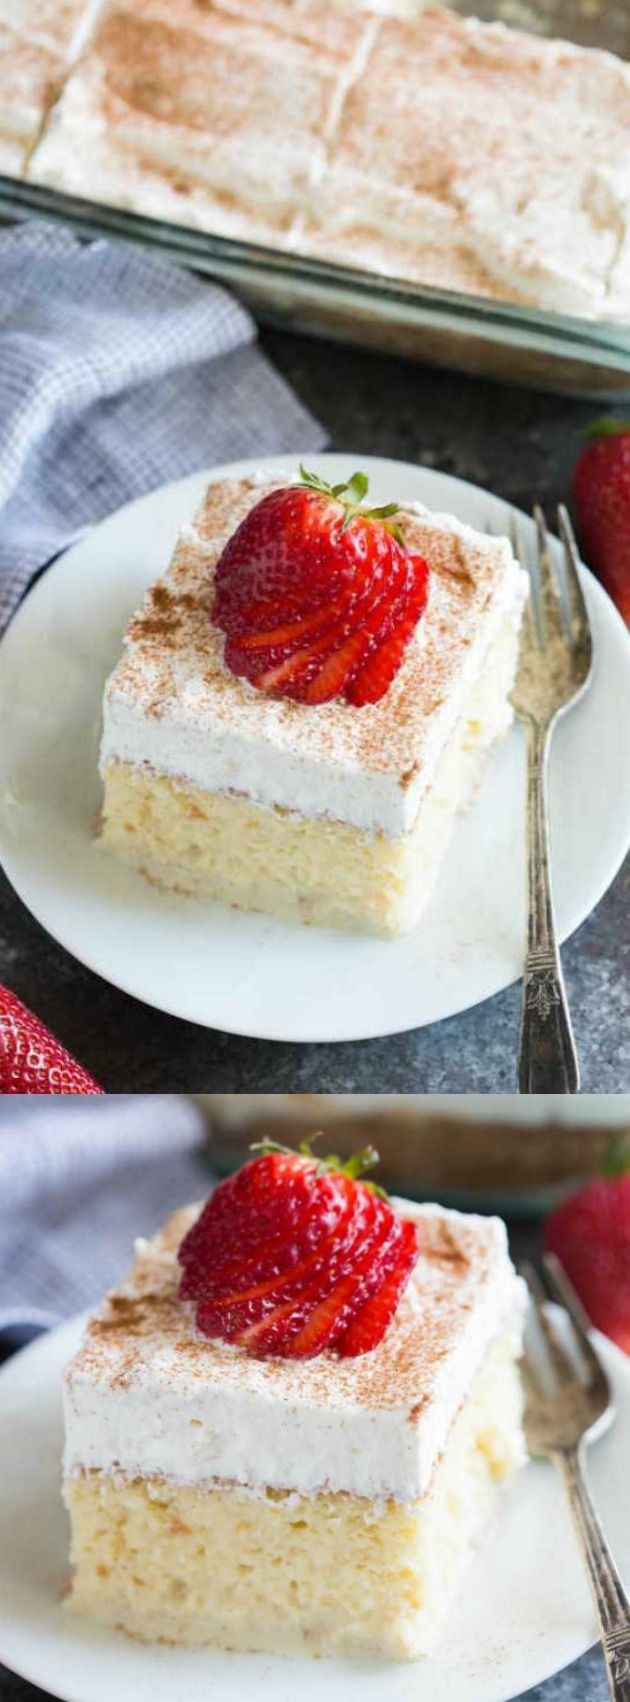 Best Tres Leches Cake In Dc